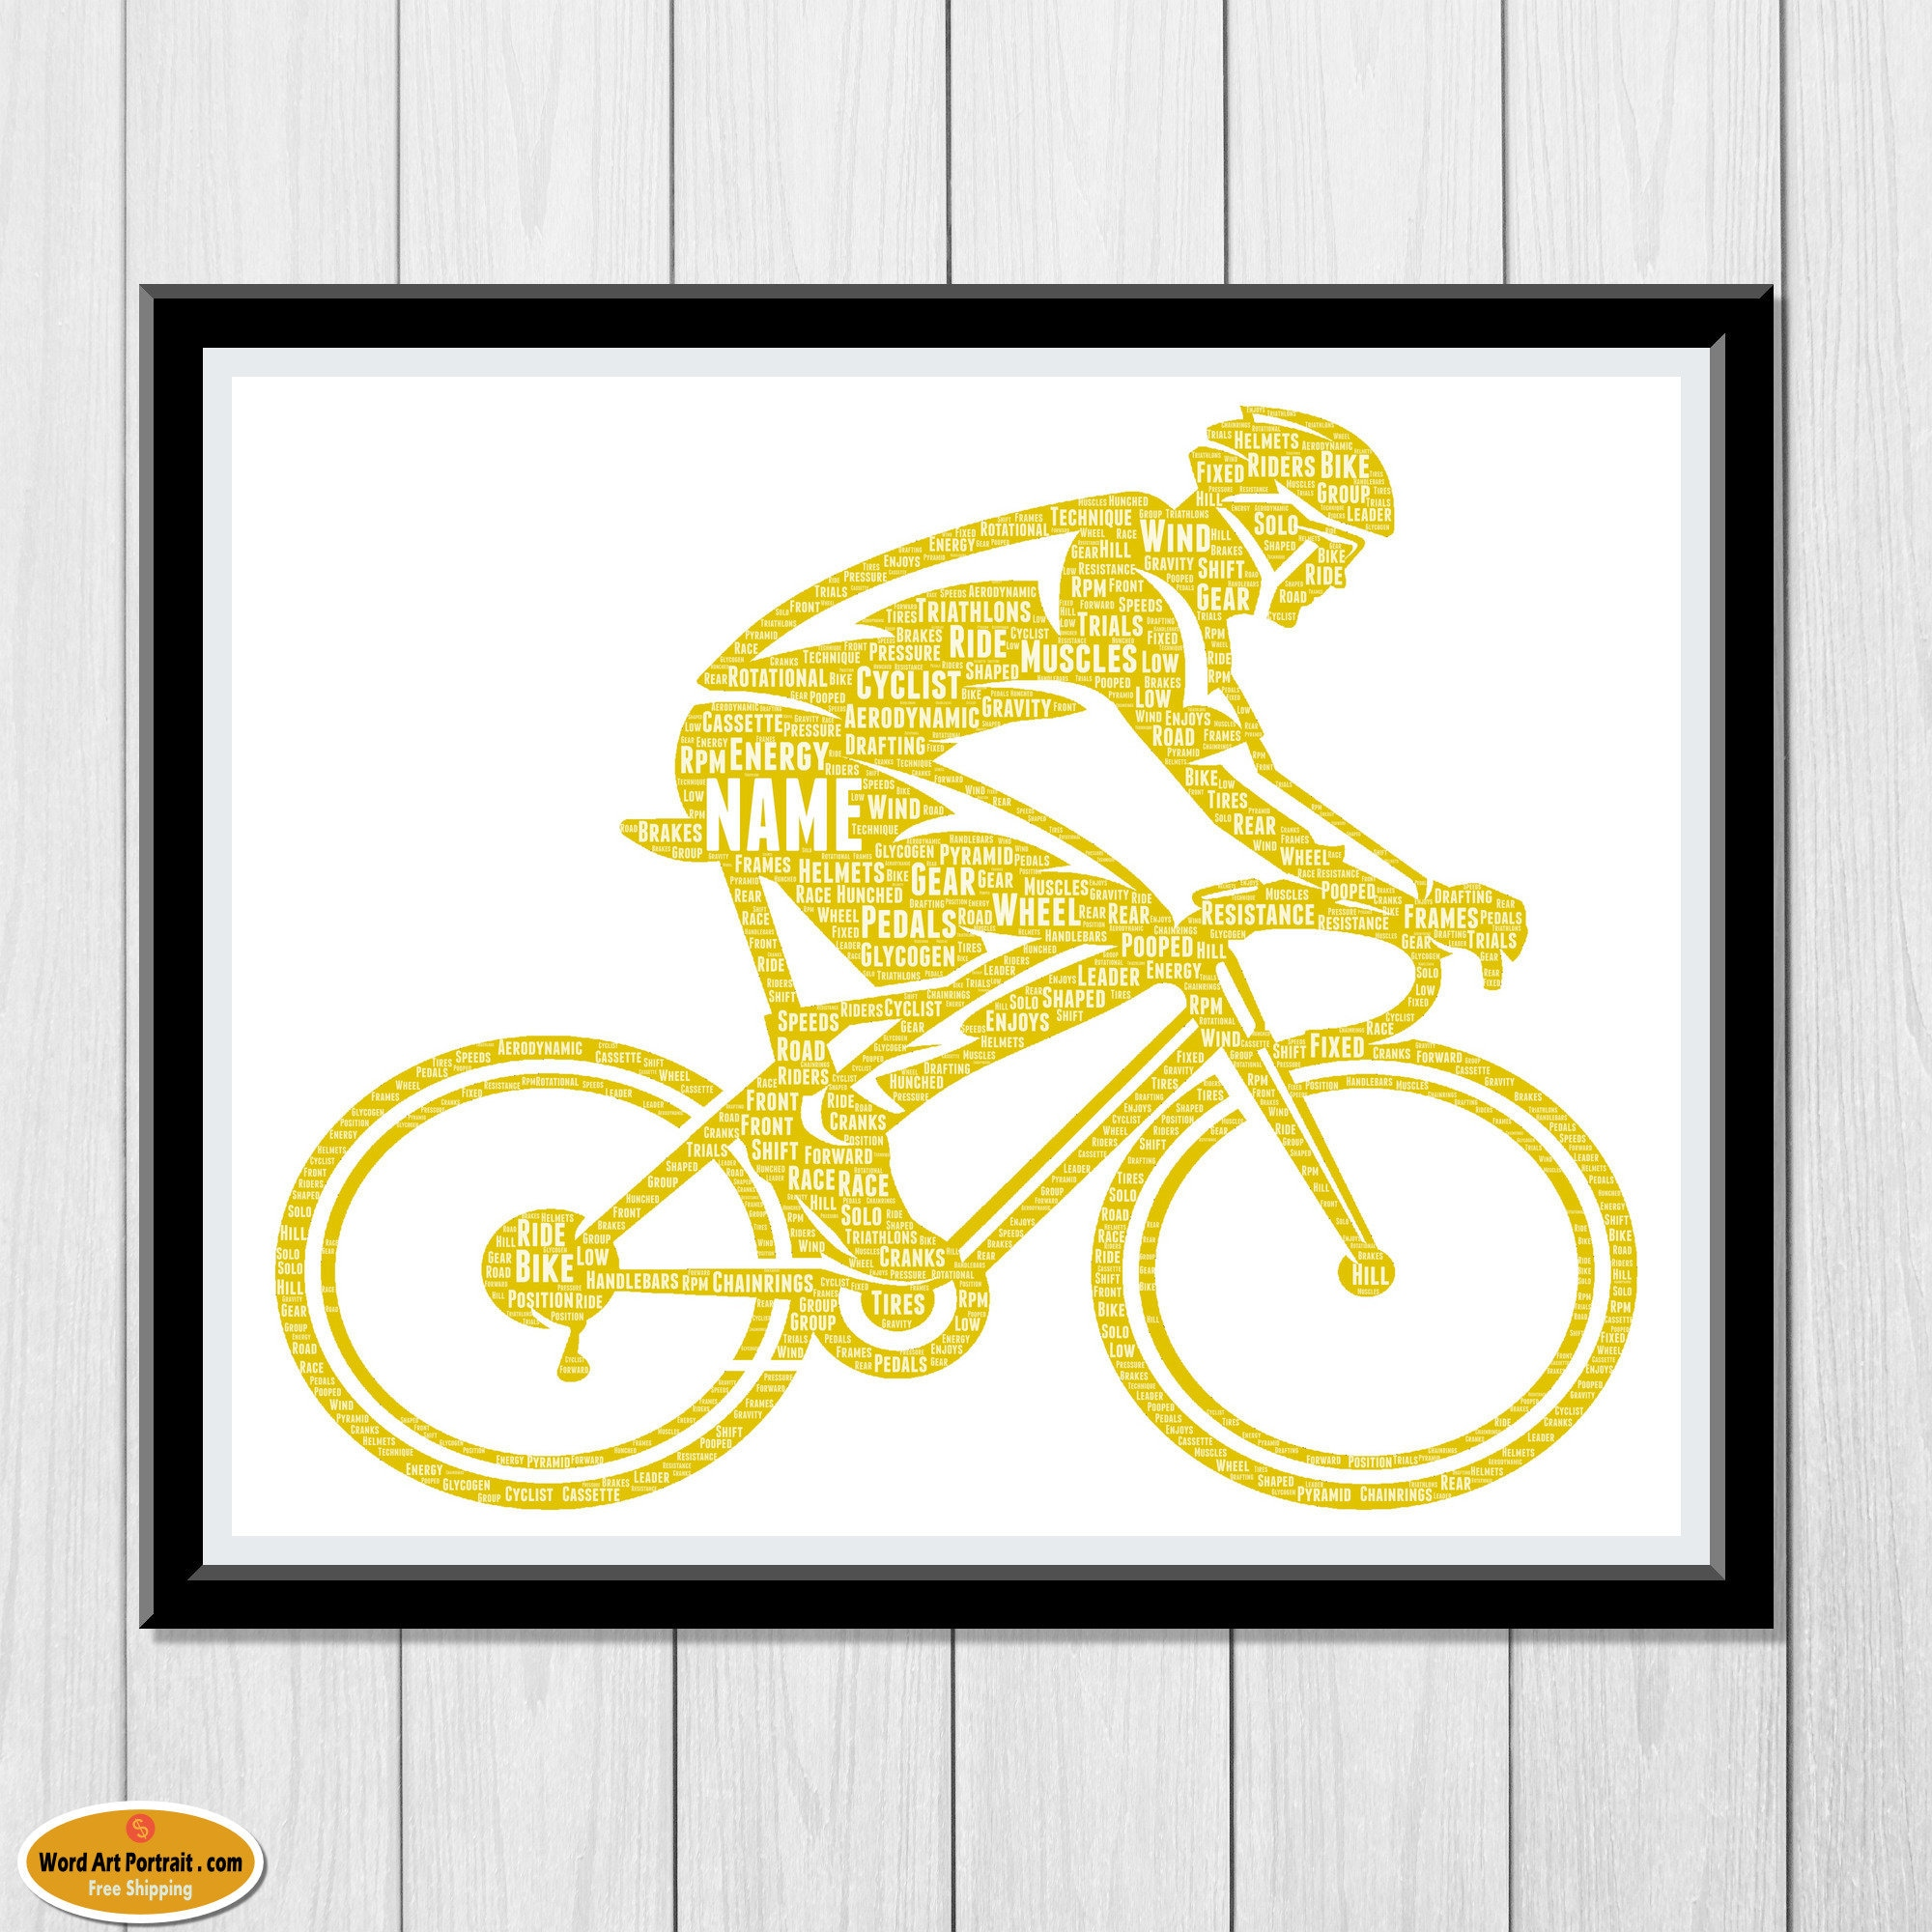 Cycling Gifts Personalized - Gifts For Bike Riders Cyclists - Road bi cycle Gifts - For Son- Dad- Uncle Brother Husband - Word Cloud Wall Art